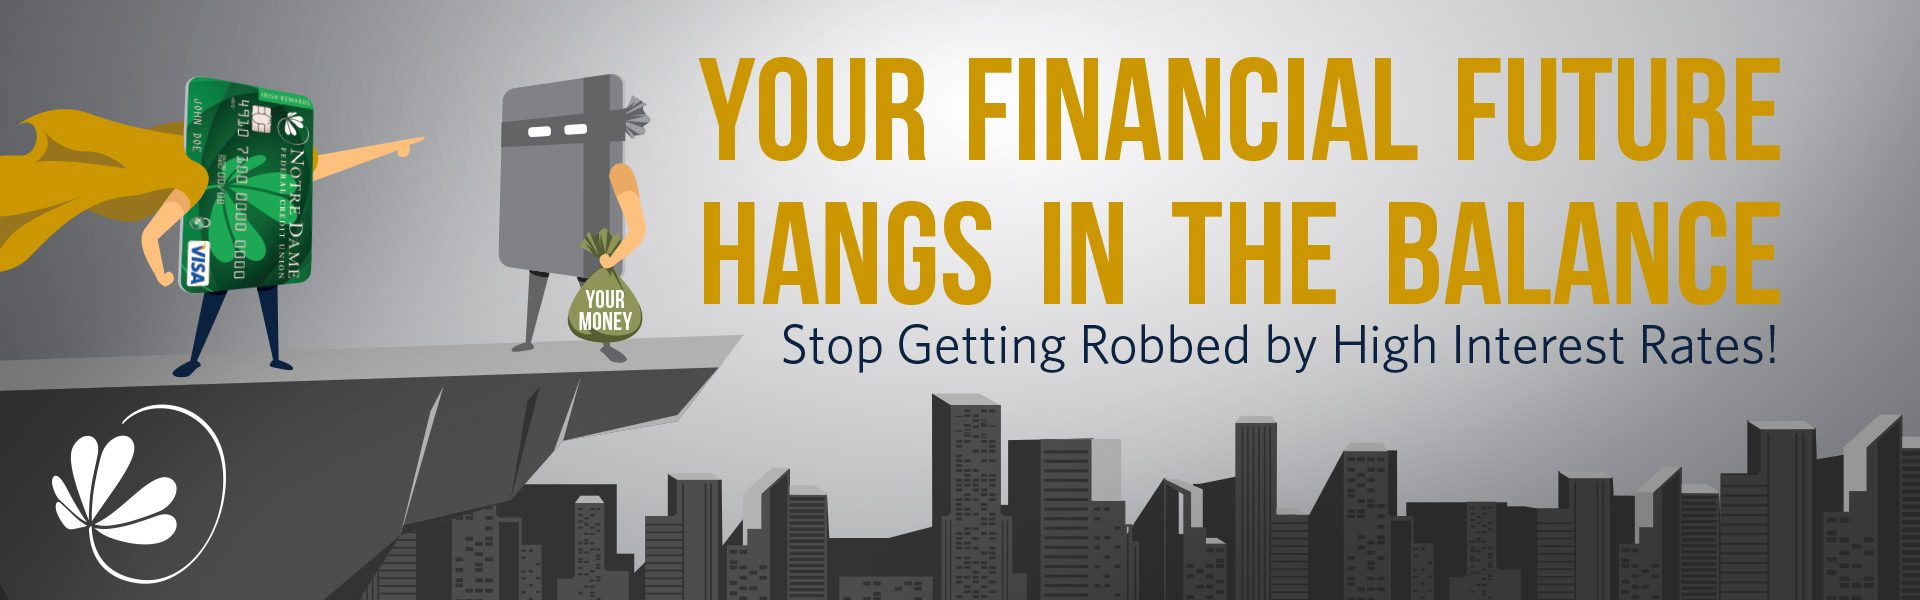 Your financial future hangs in the balance. Stop getting robbed by high interest rates!